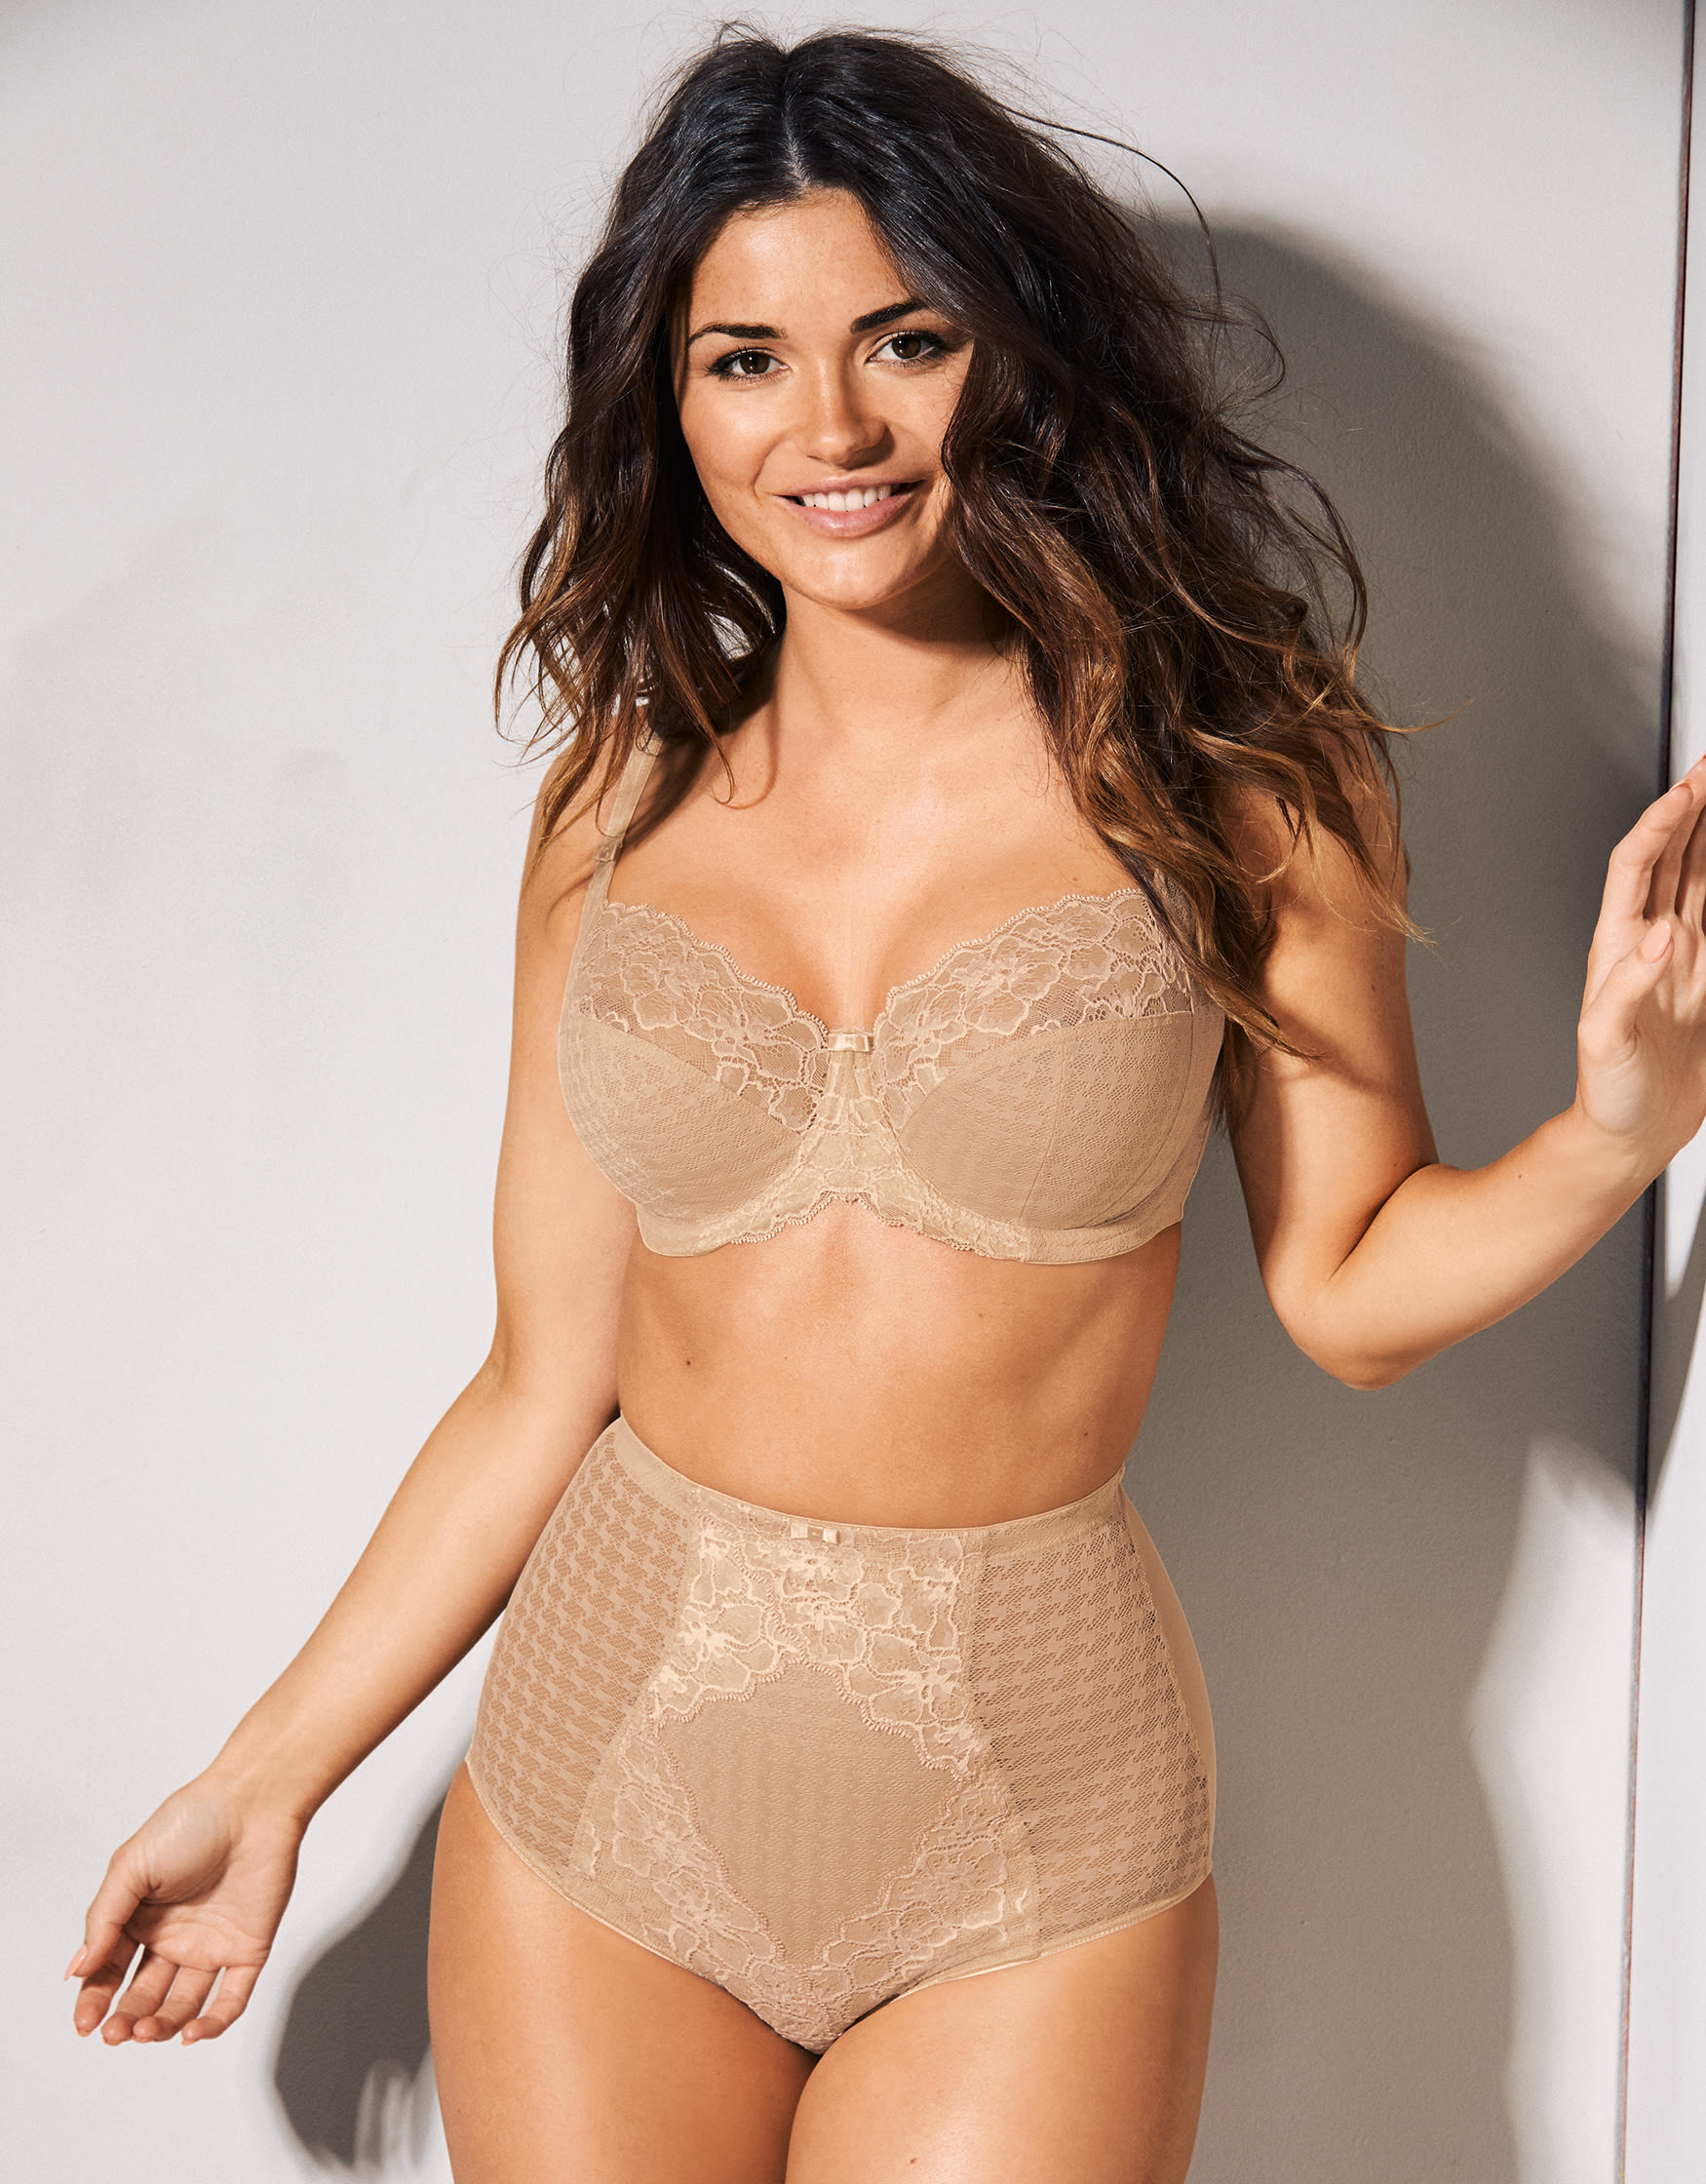 Side Support Bras Bras With Side Support Panels In A D L Cup